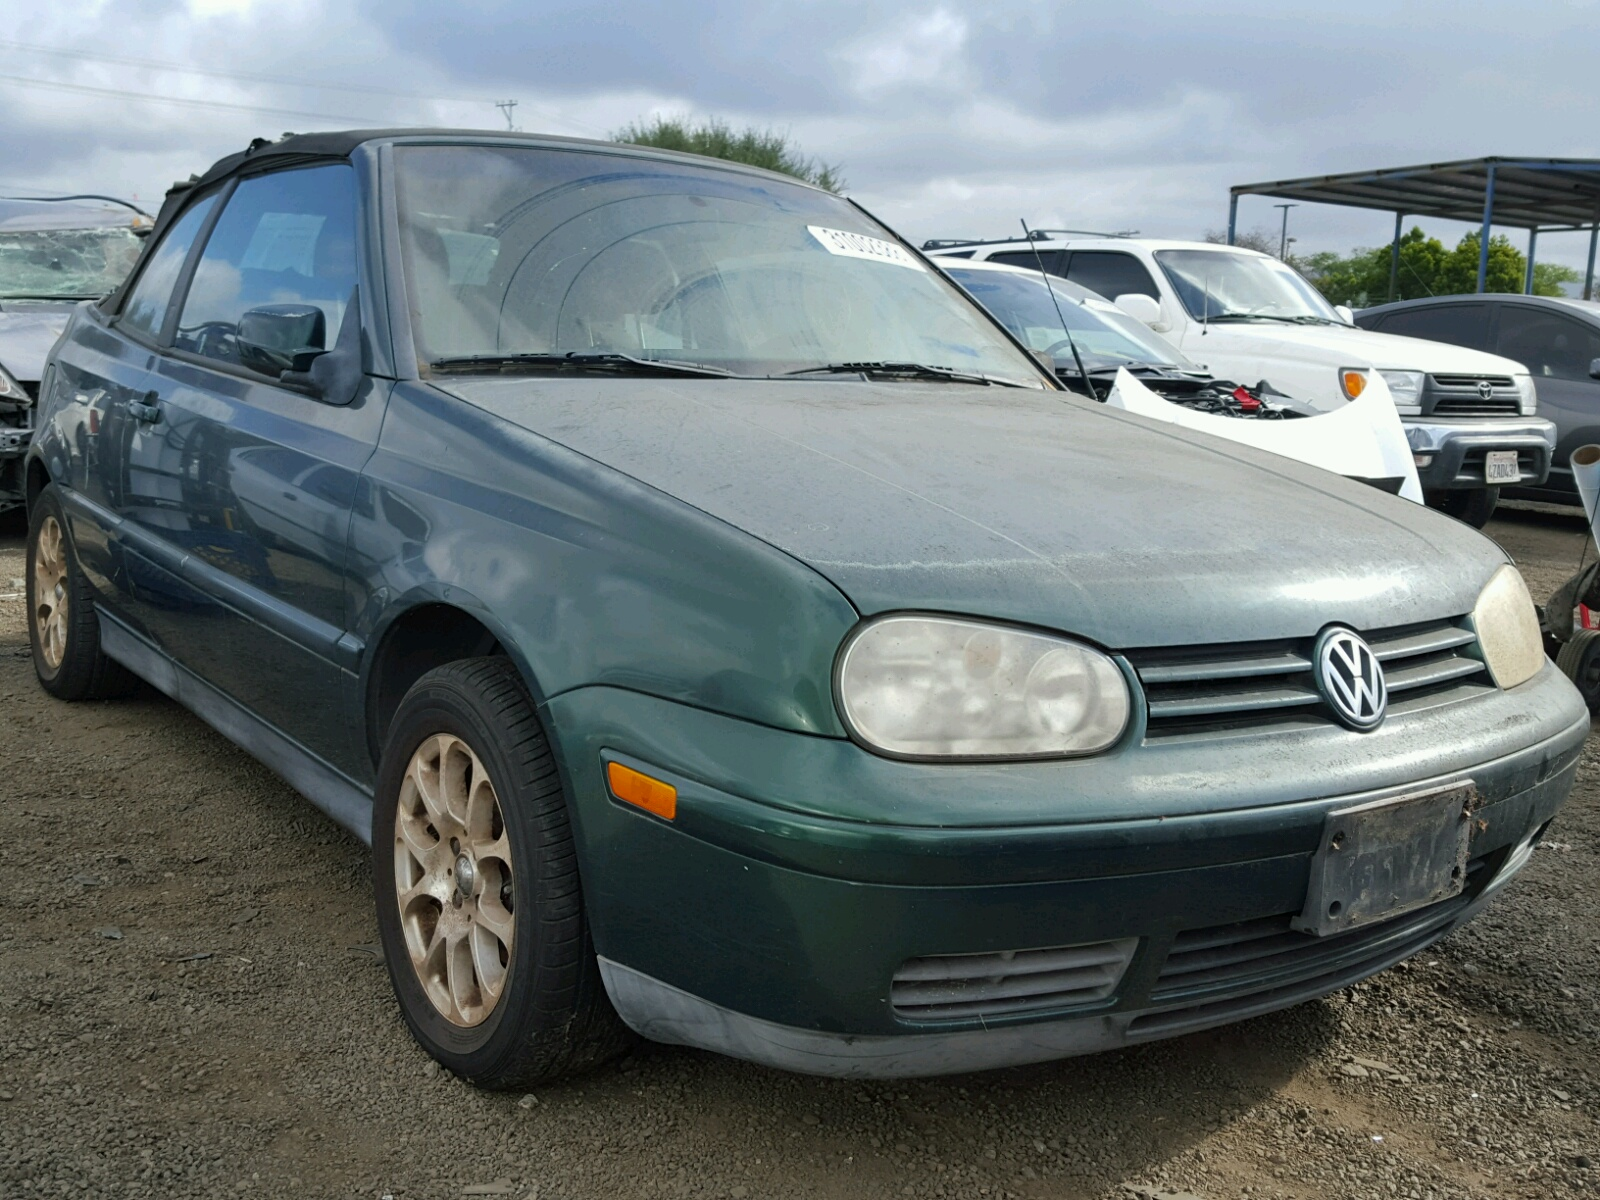 auctions auto view sale s salvage lot volkswagen ca certificate carfinder diego blue san online in en copart passat left on